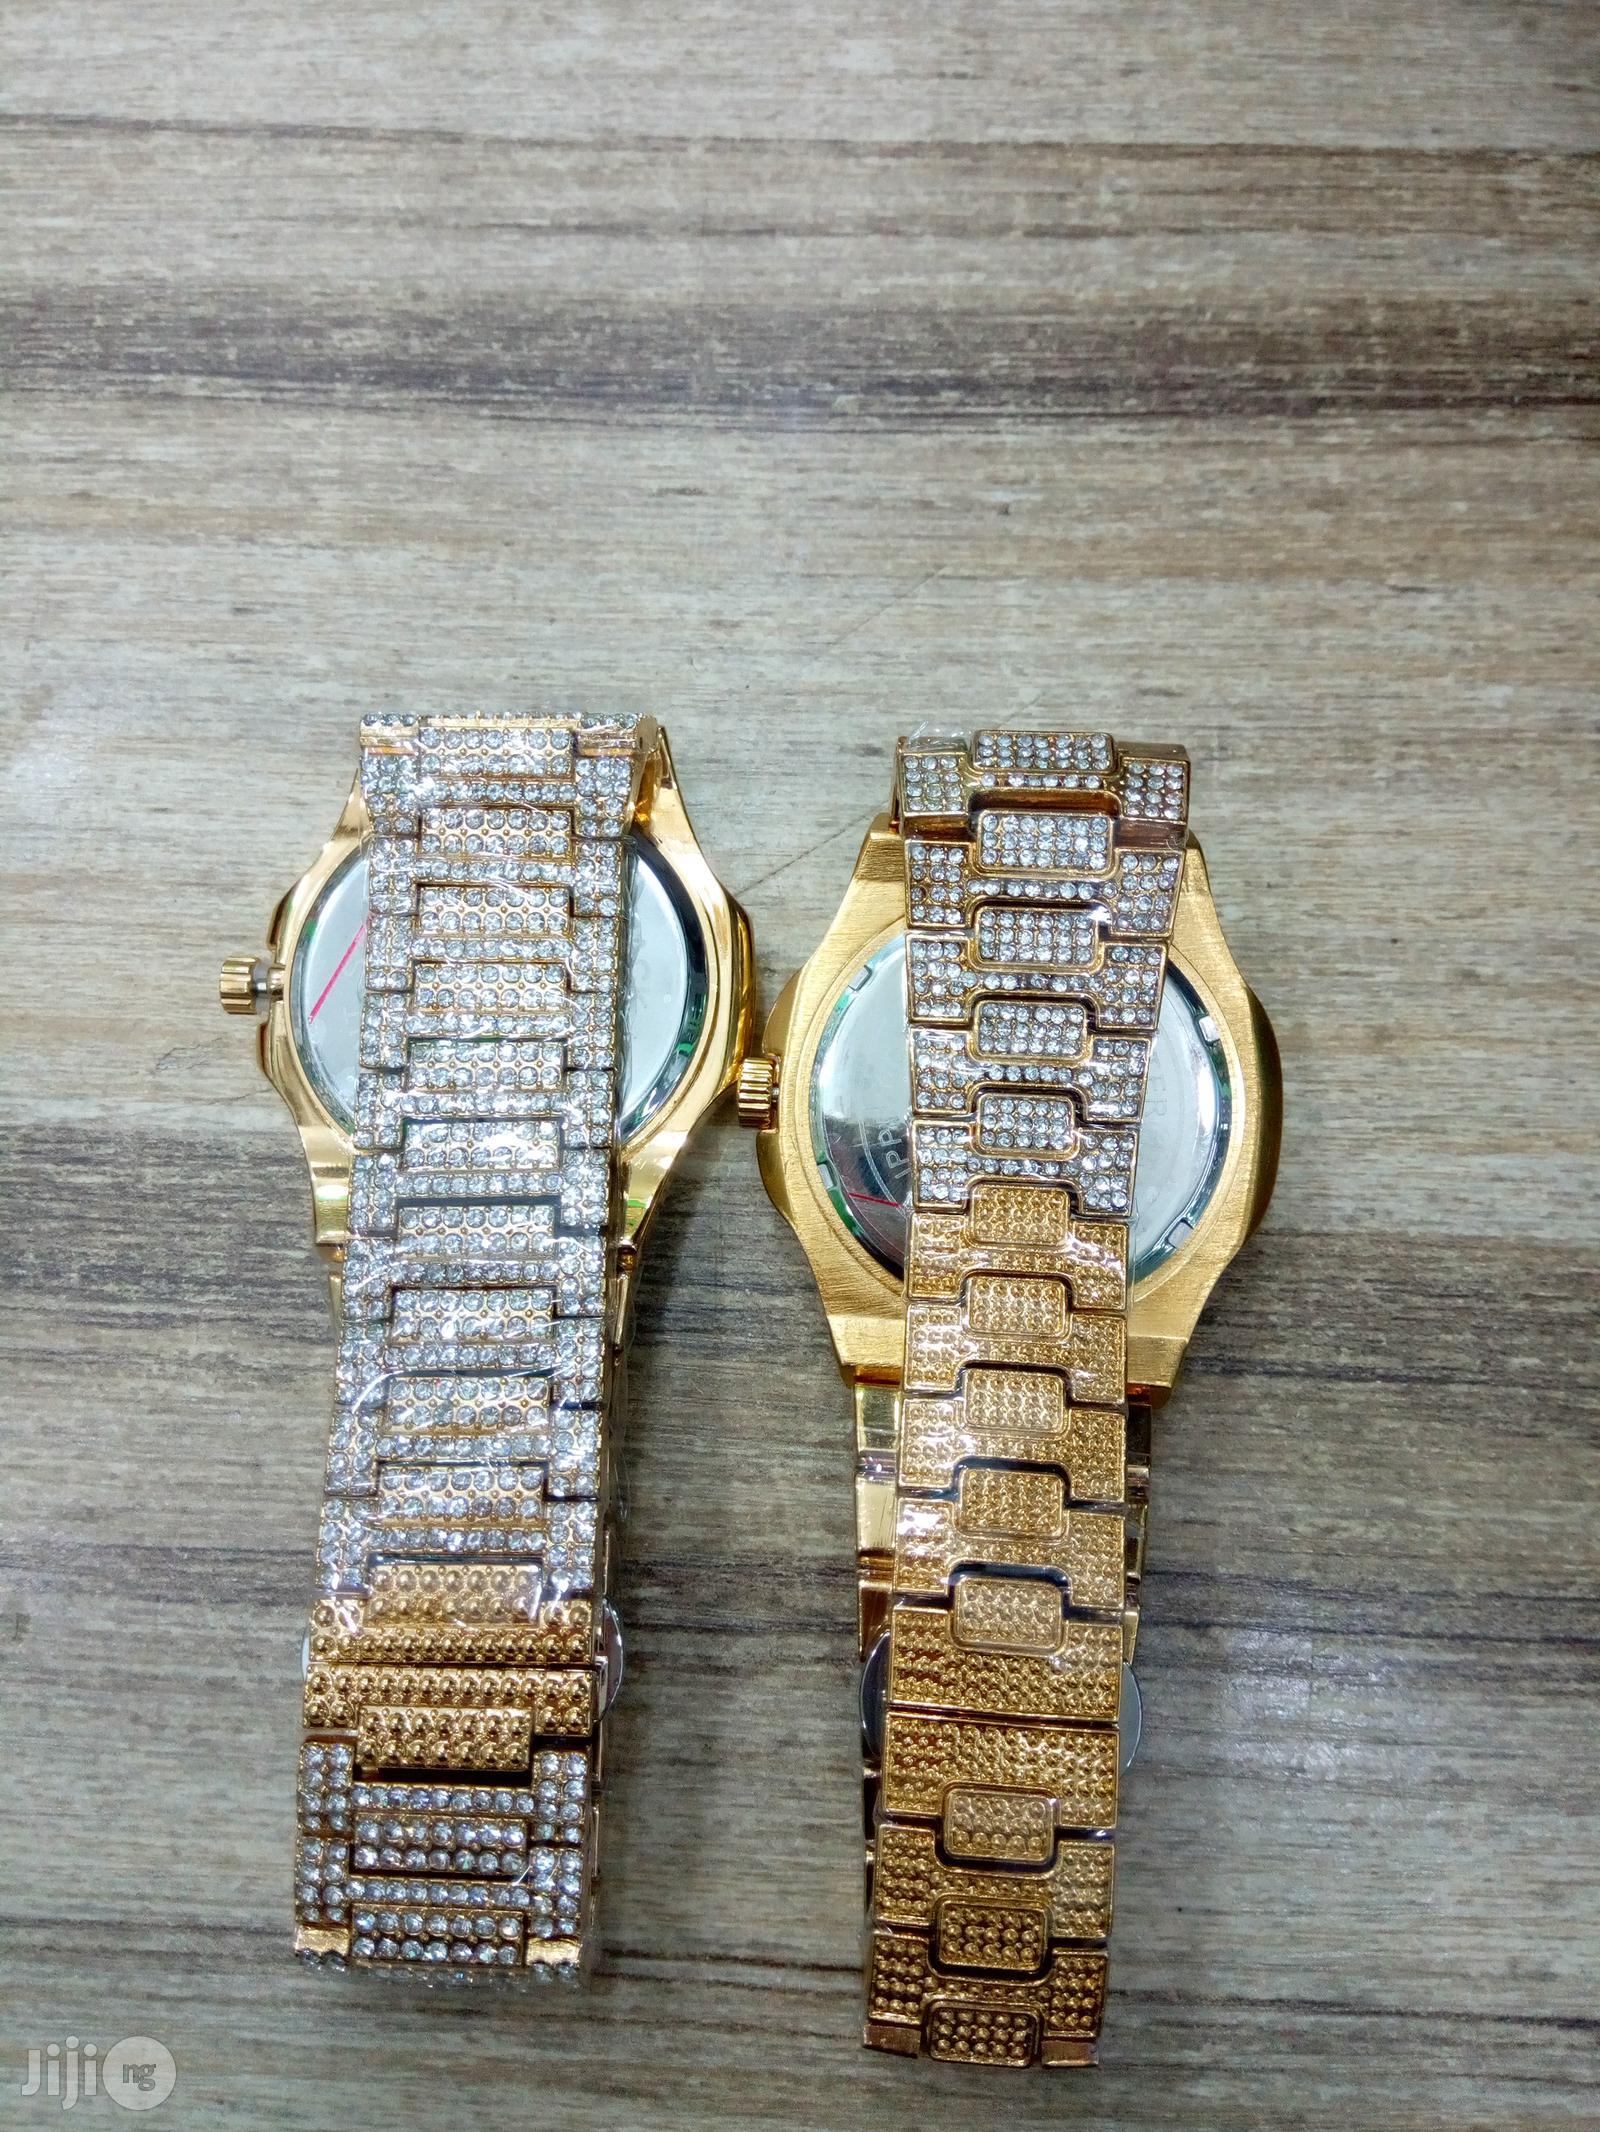 Men's Gold Patek Philippe Iced Out Chain Wrist Watch, Bracelet Ring   Watches for sale in Ikeja, Lagos State, Nigeria